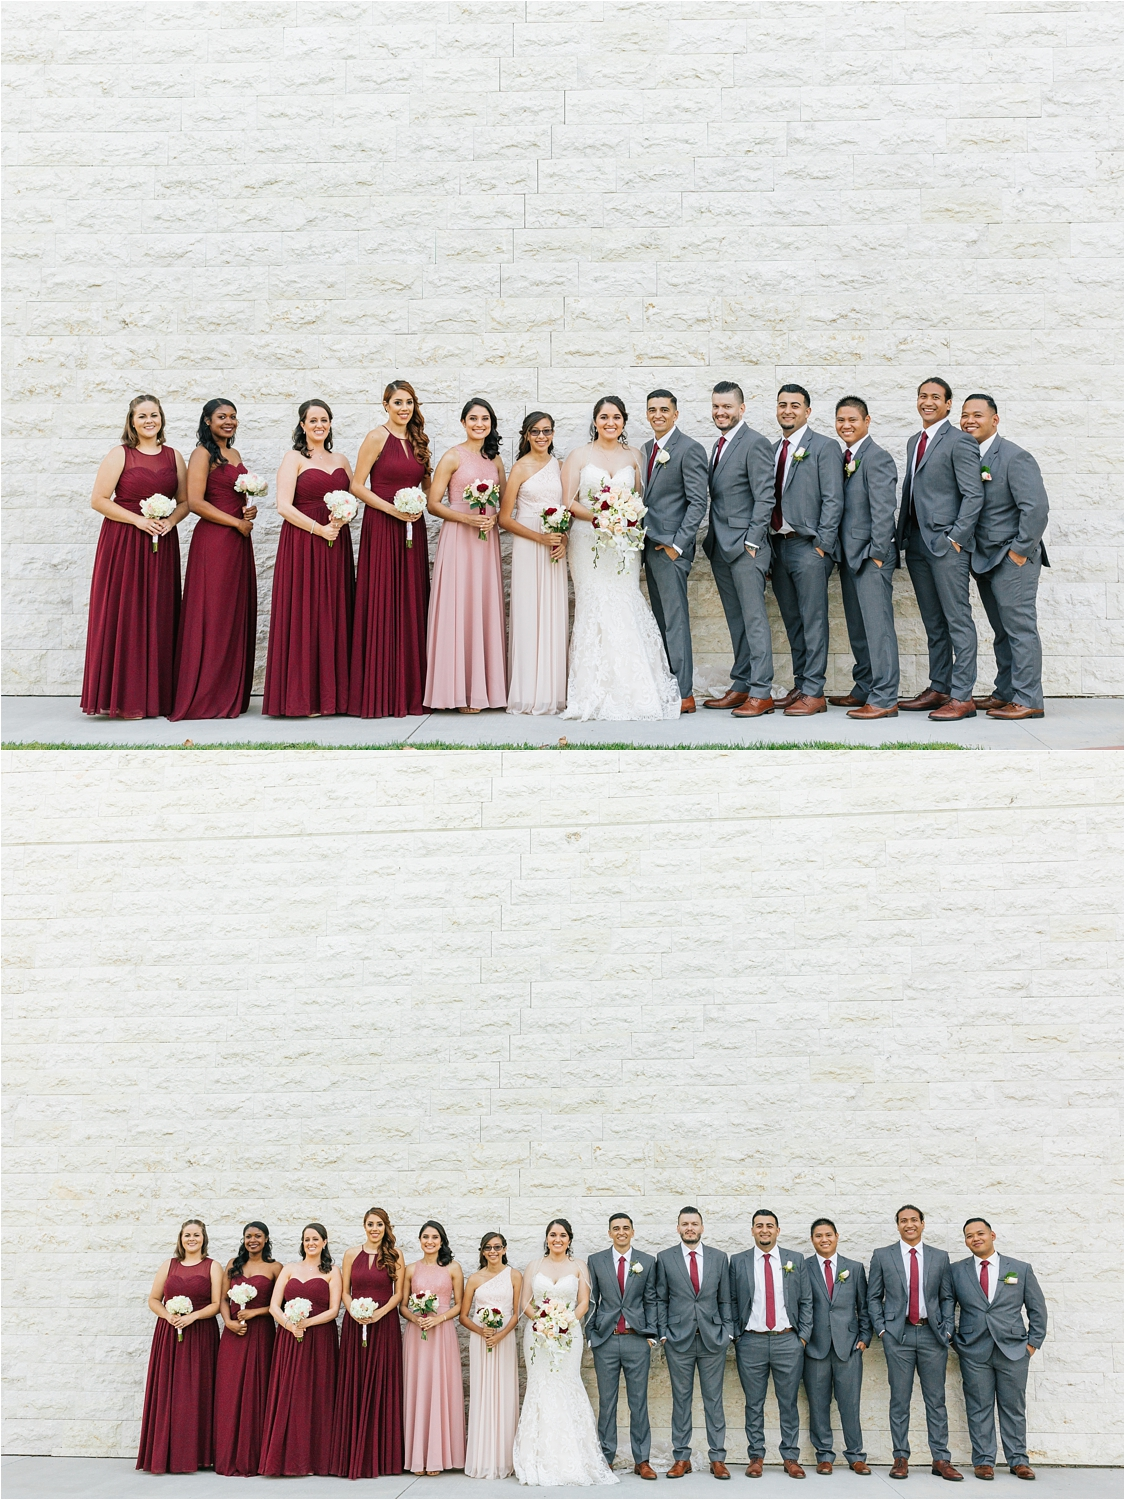 Wedding Party Photos - Bride and Groom with Bridesmaids and Groomsmen - https://brittneyhannonphotography.com